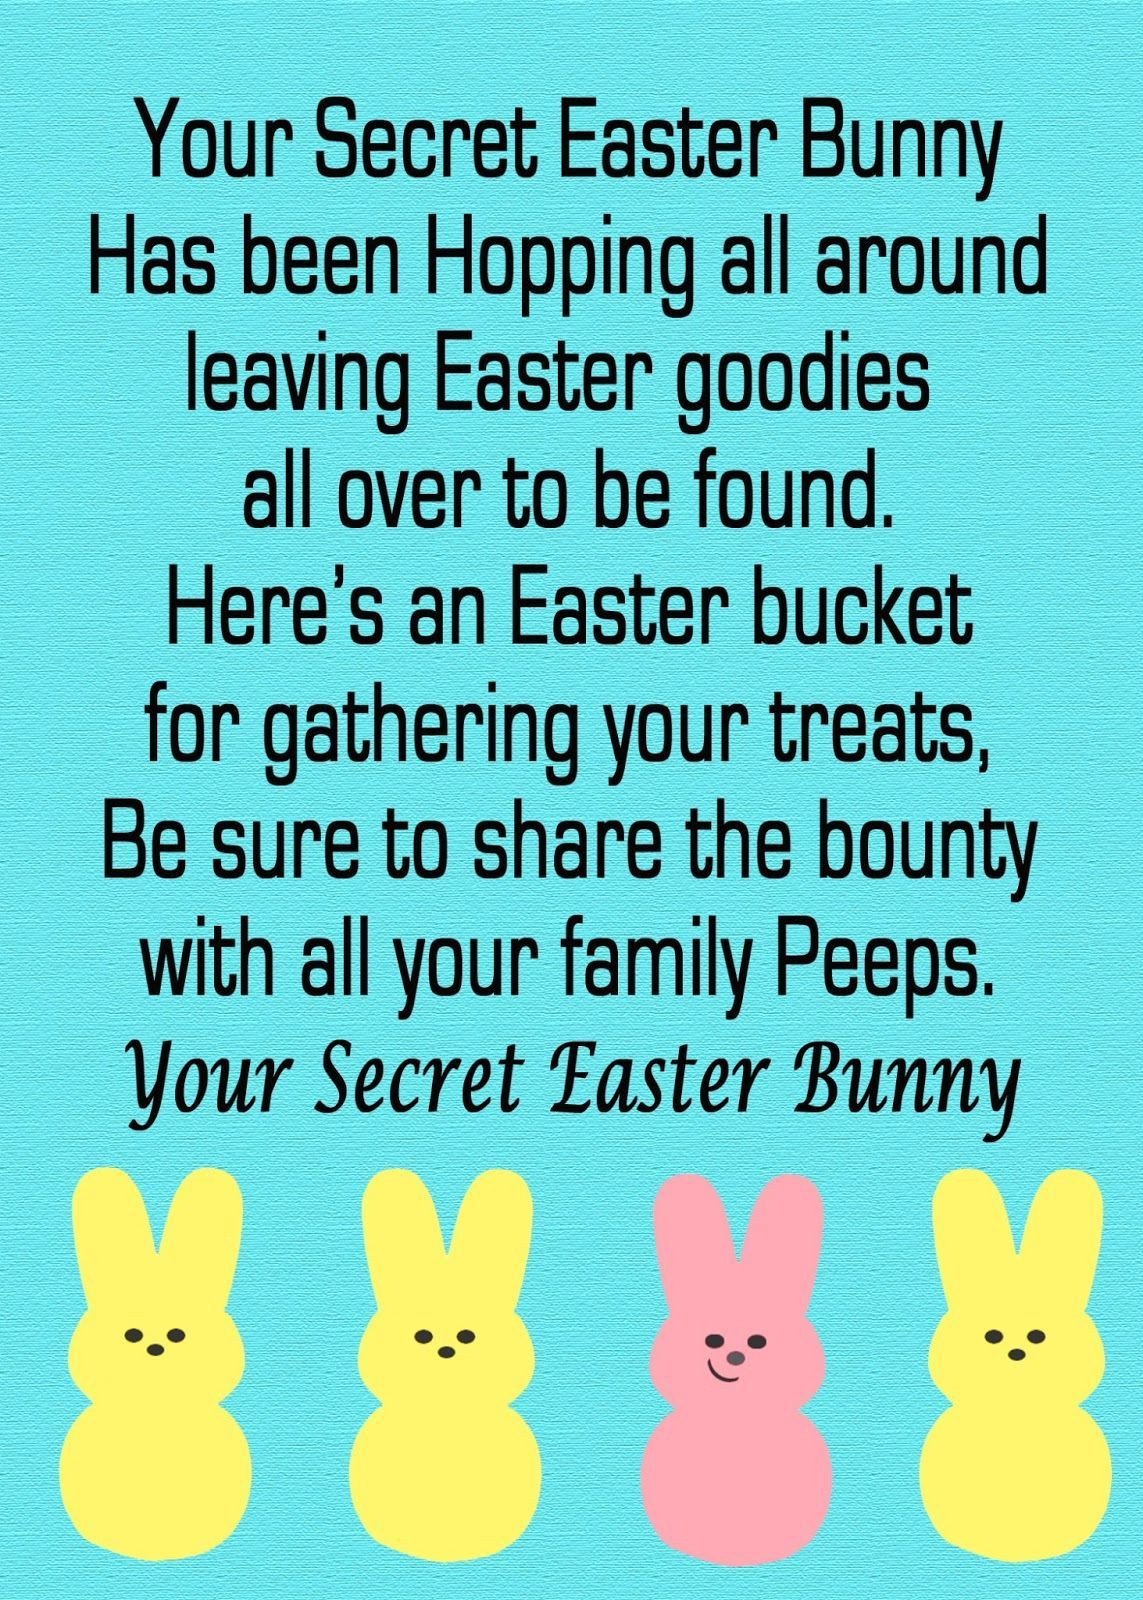 Secret easter bunny free printable pinterest easter hunt easter hunt idea for kids secret easter bunny poem free printable negle Images